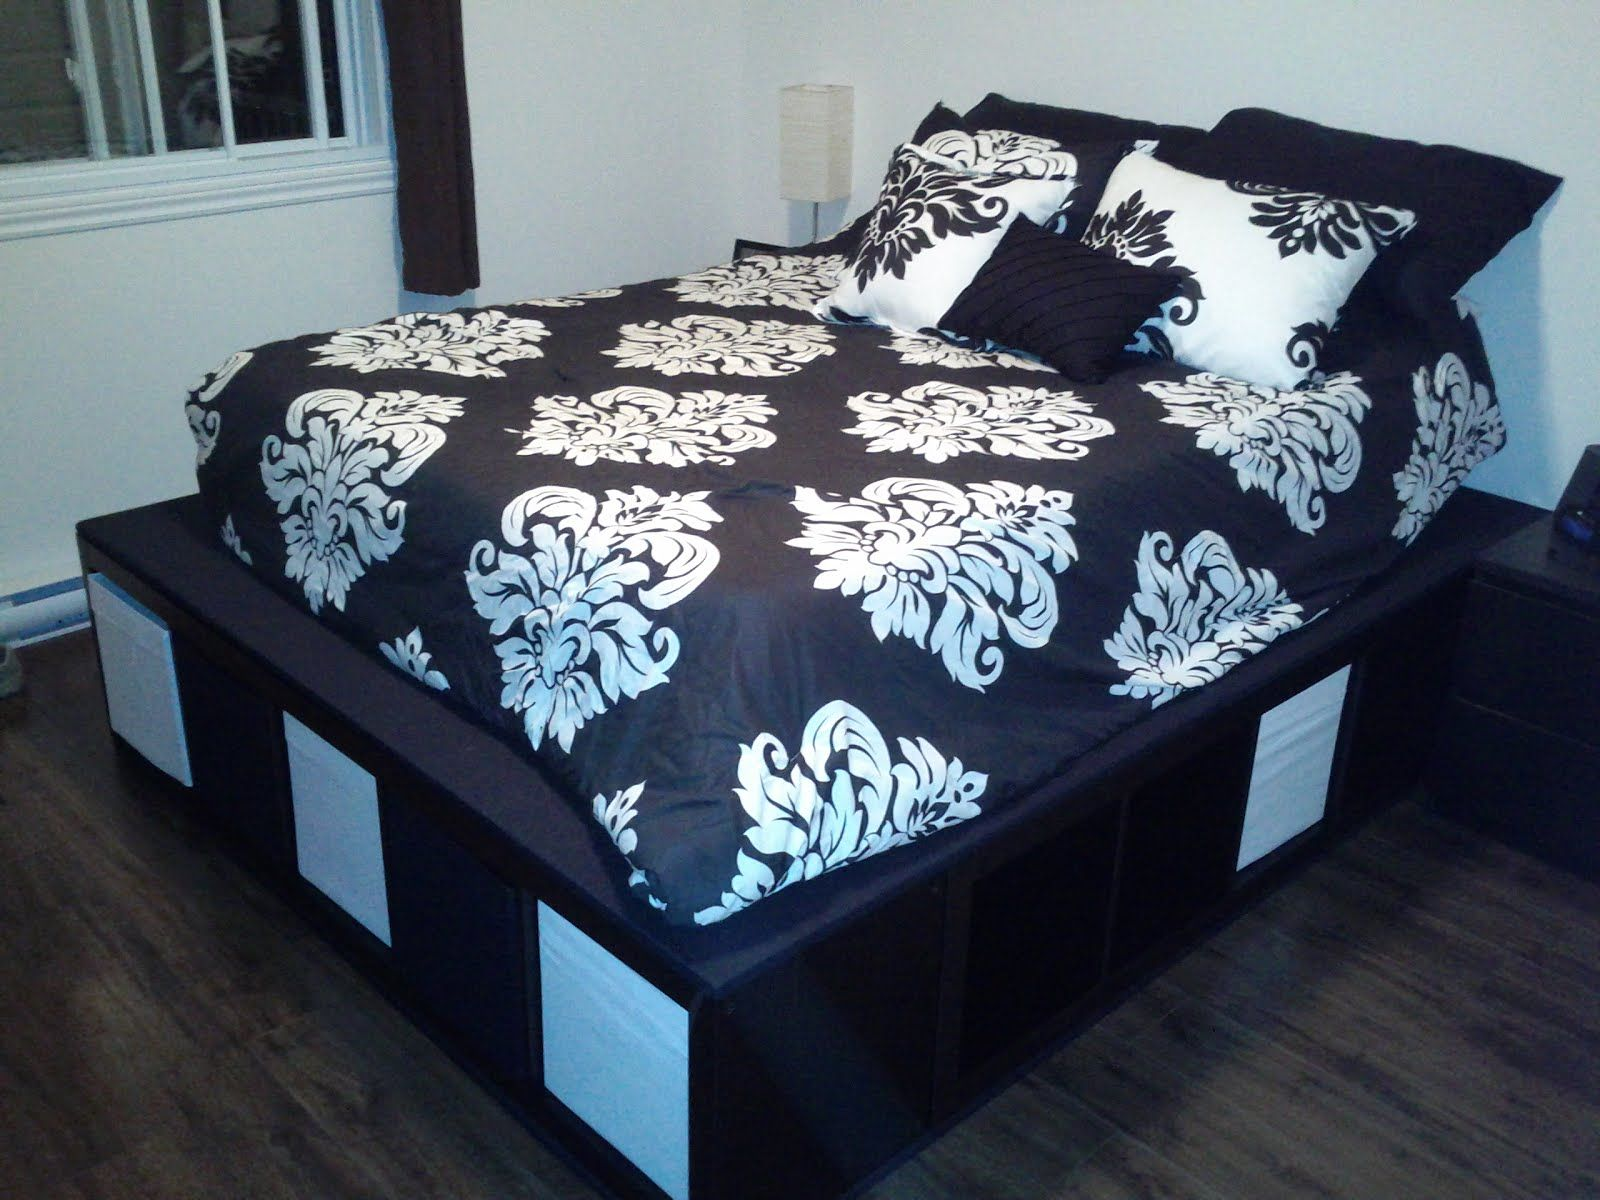 Expedit Storage Bed Ikea Storage Bed Storage Bed Bed Frame With Storage